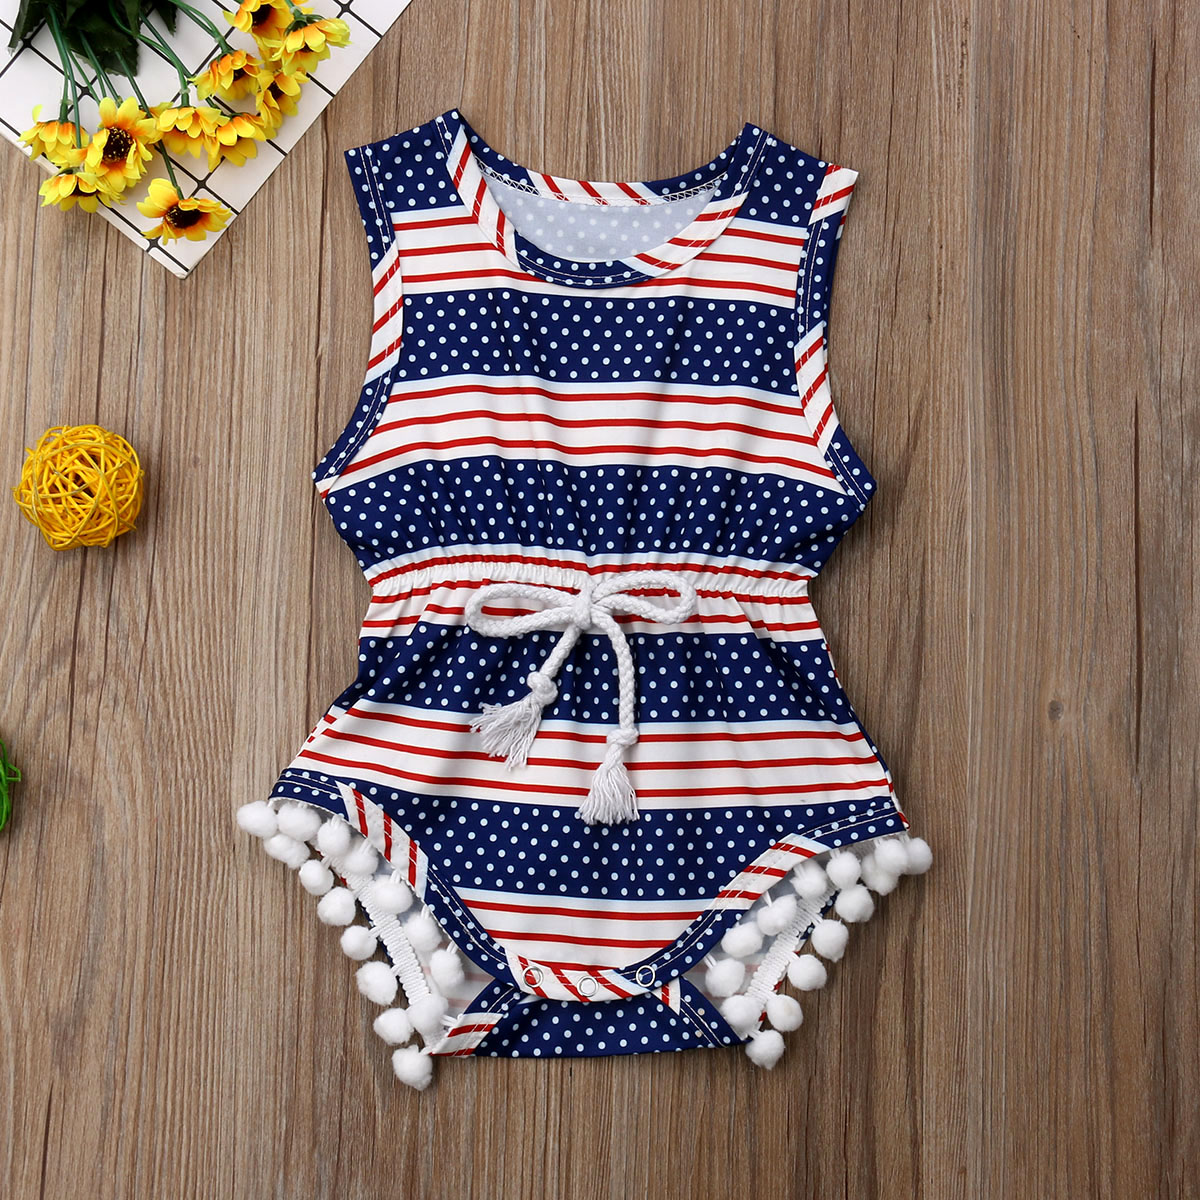 Infant Newborn Baby Girls 4th of July Romper Bodysuit Jumpsuit Clothes OutfitsInfant Newborn Baby Girls 4th of July Romper Bodysuit Jumpsuit Clothes Outfits